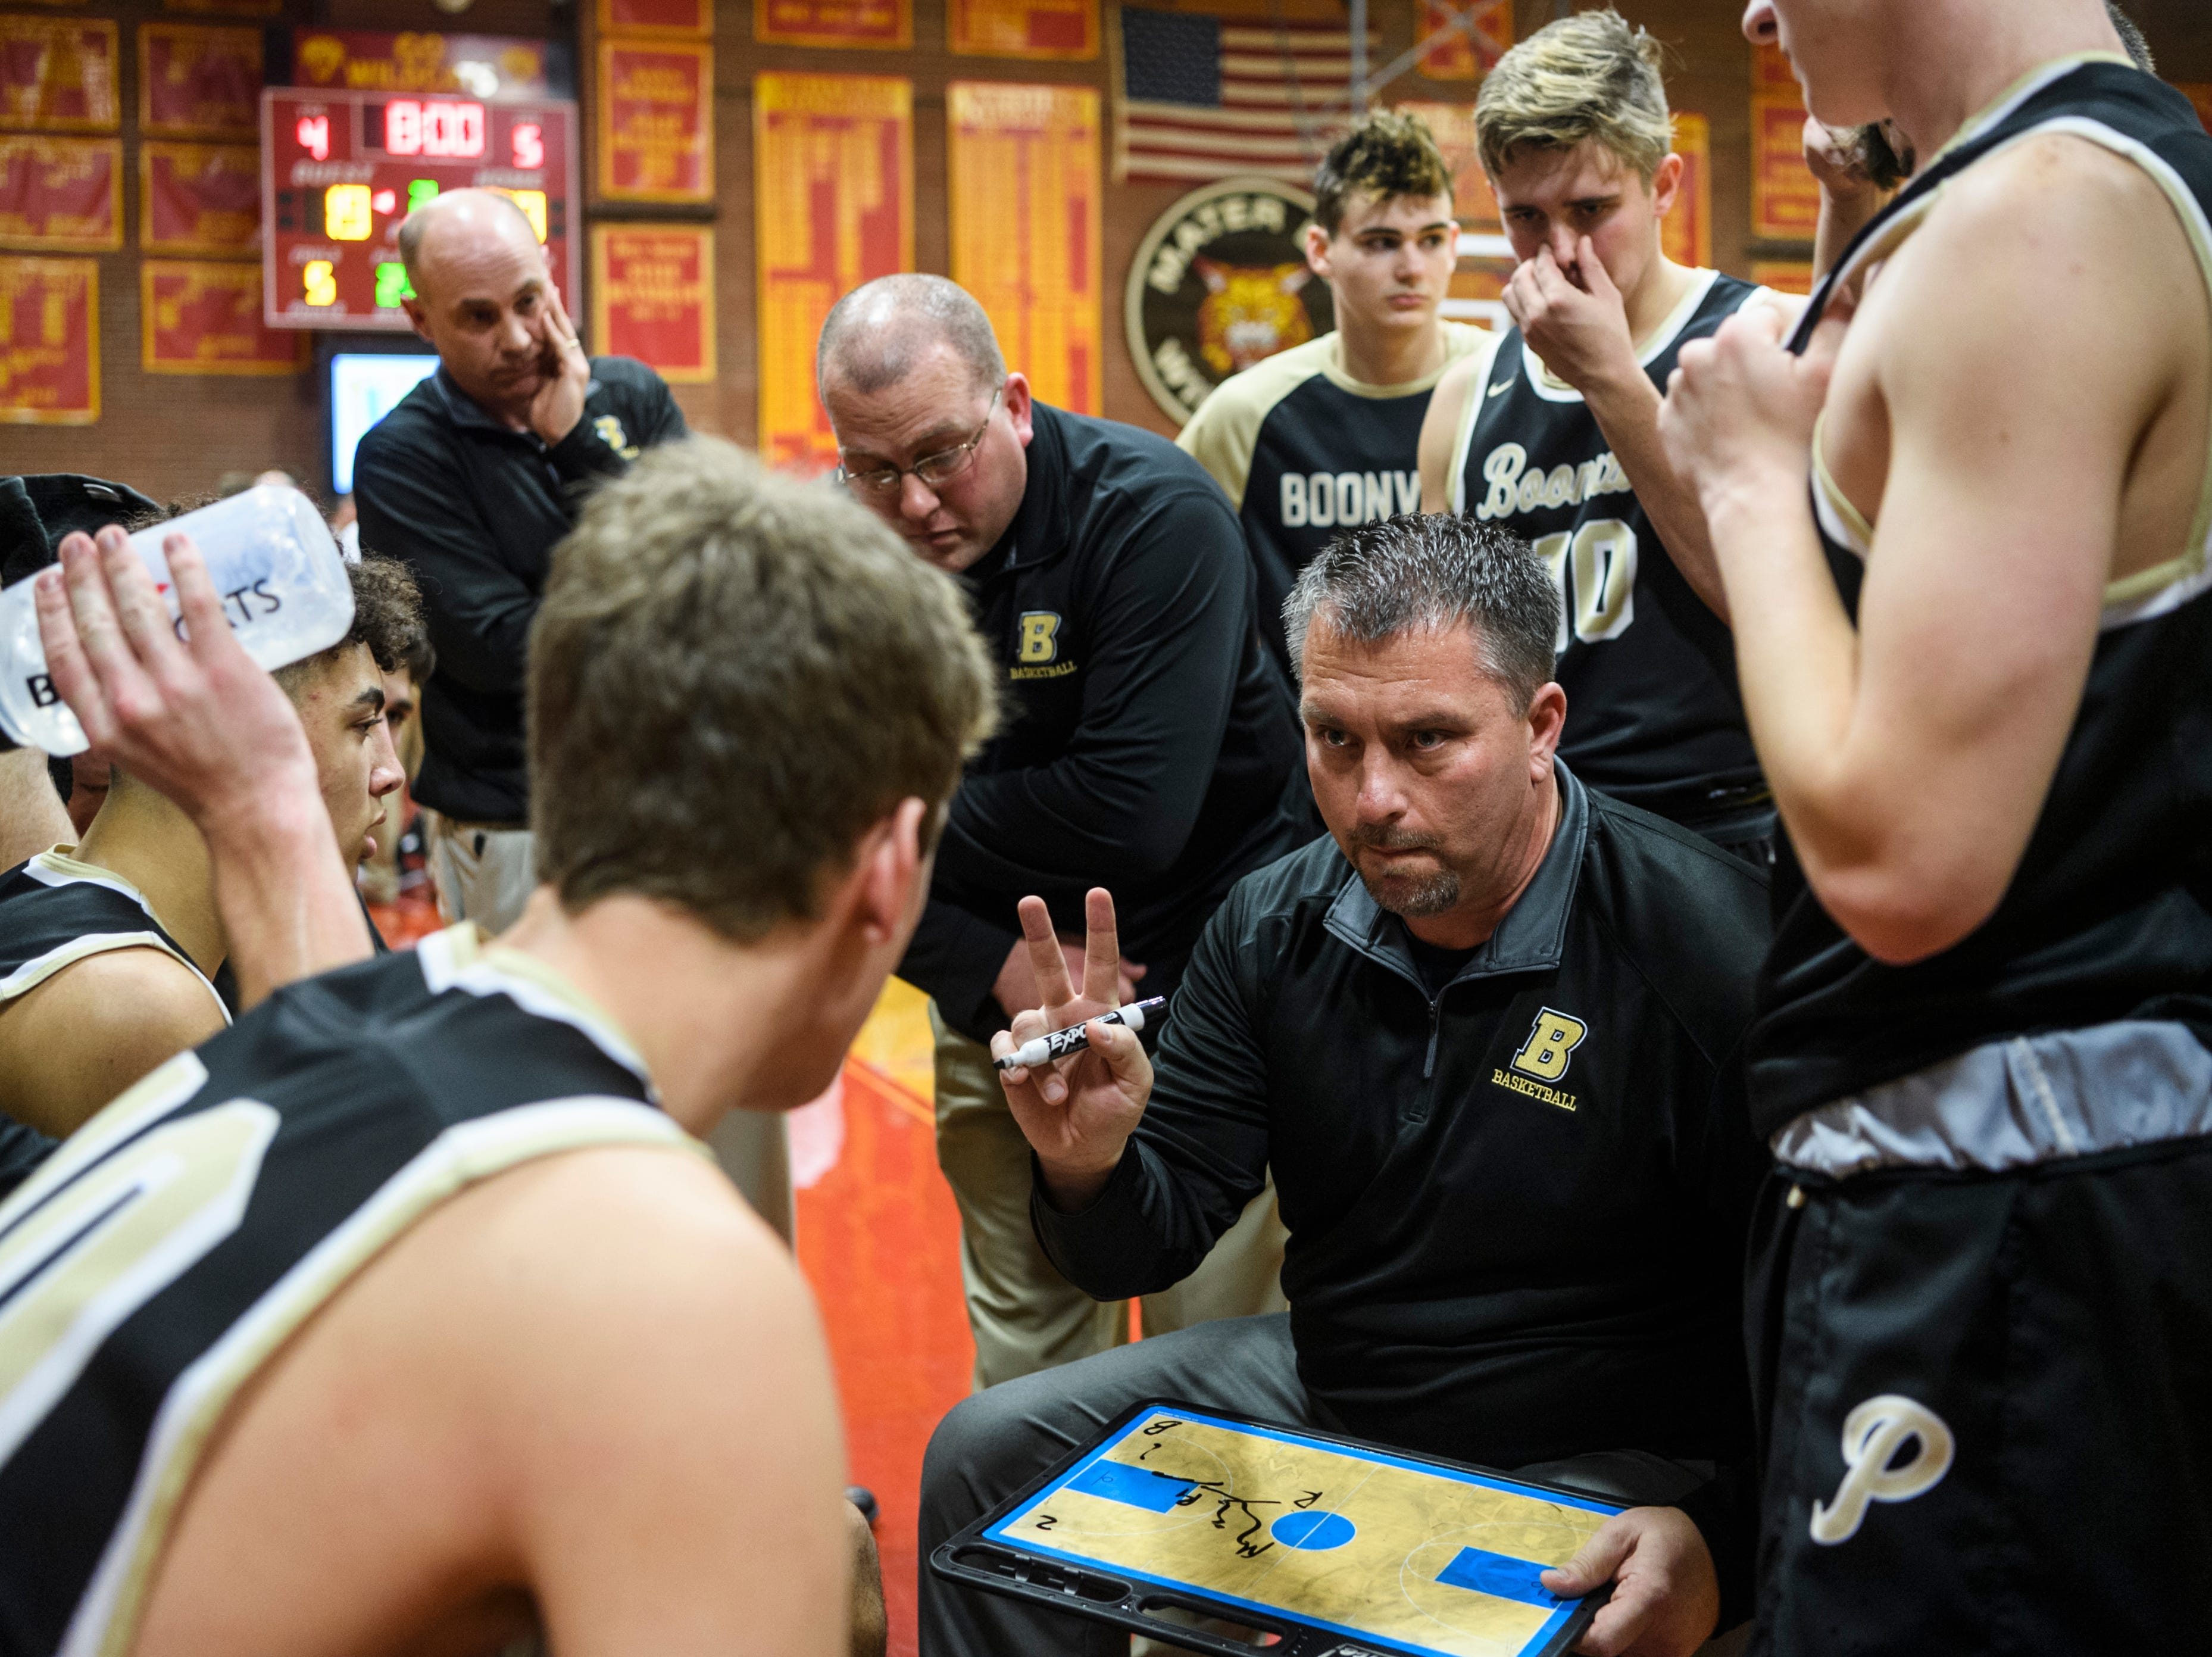 Boonville Head Coach Brian Schoonover talks to his team before the start of the second quarter against the Mater Dei Wildcats at Mater Dei High School in Evansville, Ind., Saturday, Jan. 5, 2019. The Wildcats defeated the Pioneers, 93-65.